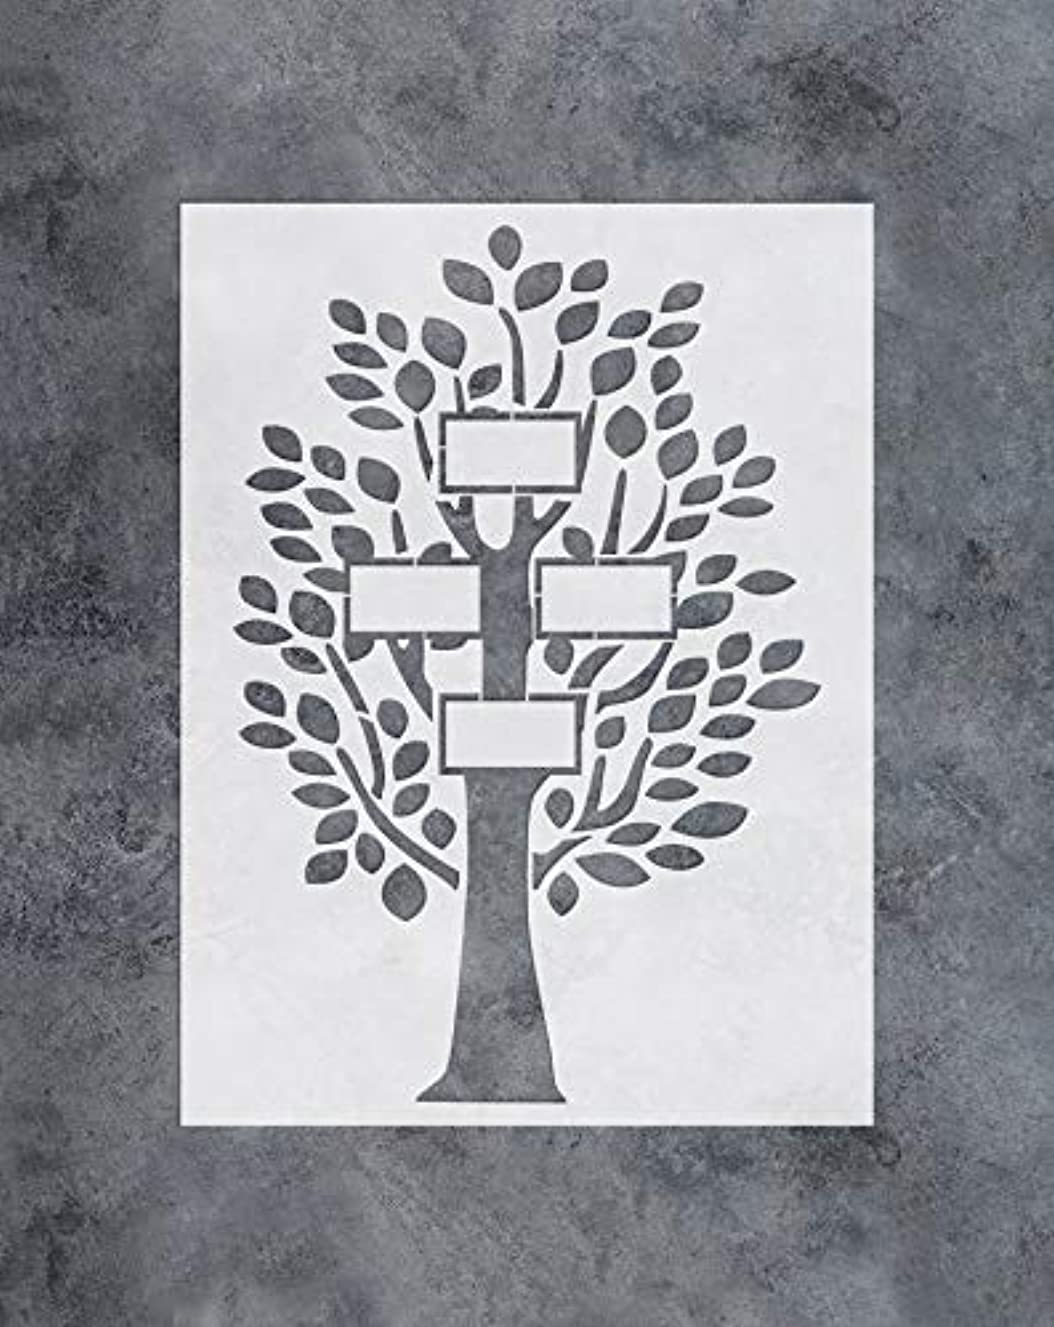 GSS Designs Family Tree Decor Stencil -4 Large Photo Picture Frames Stencil (12x16 Inch) for Painting & Craft - Living Room, Bedroom, Kids Rooms, Mural Decor-(SL-034)